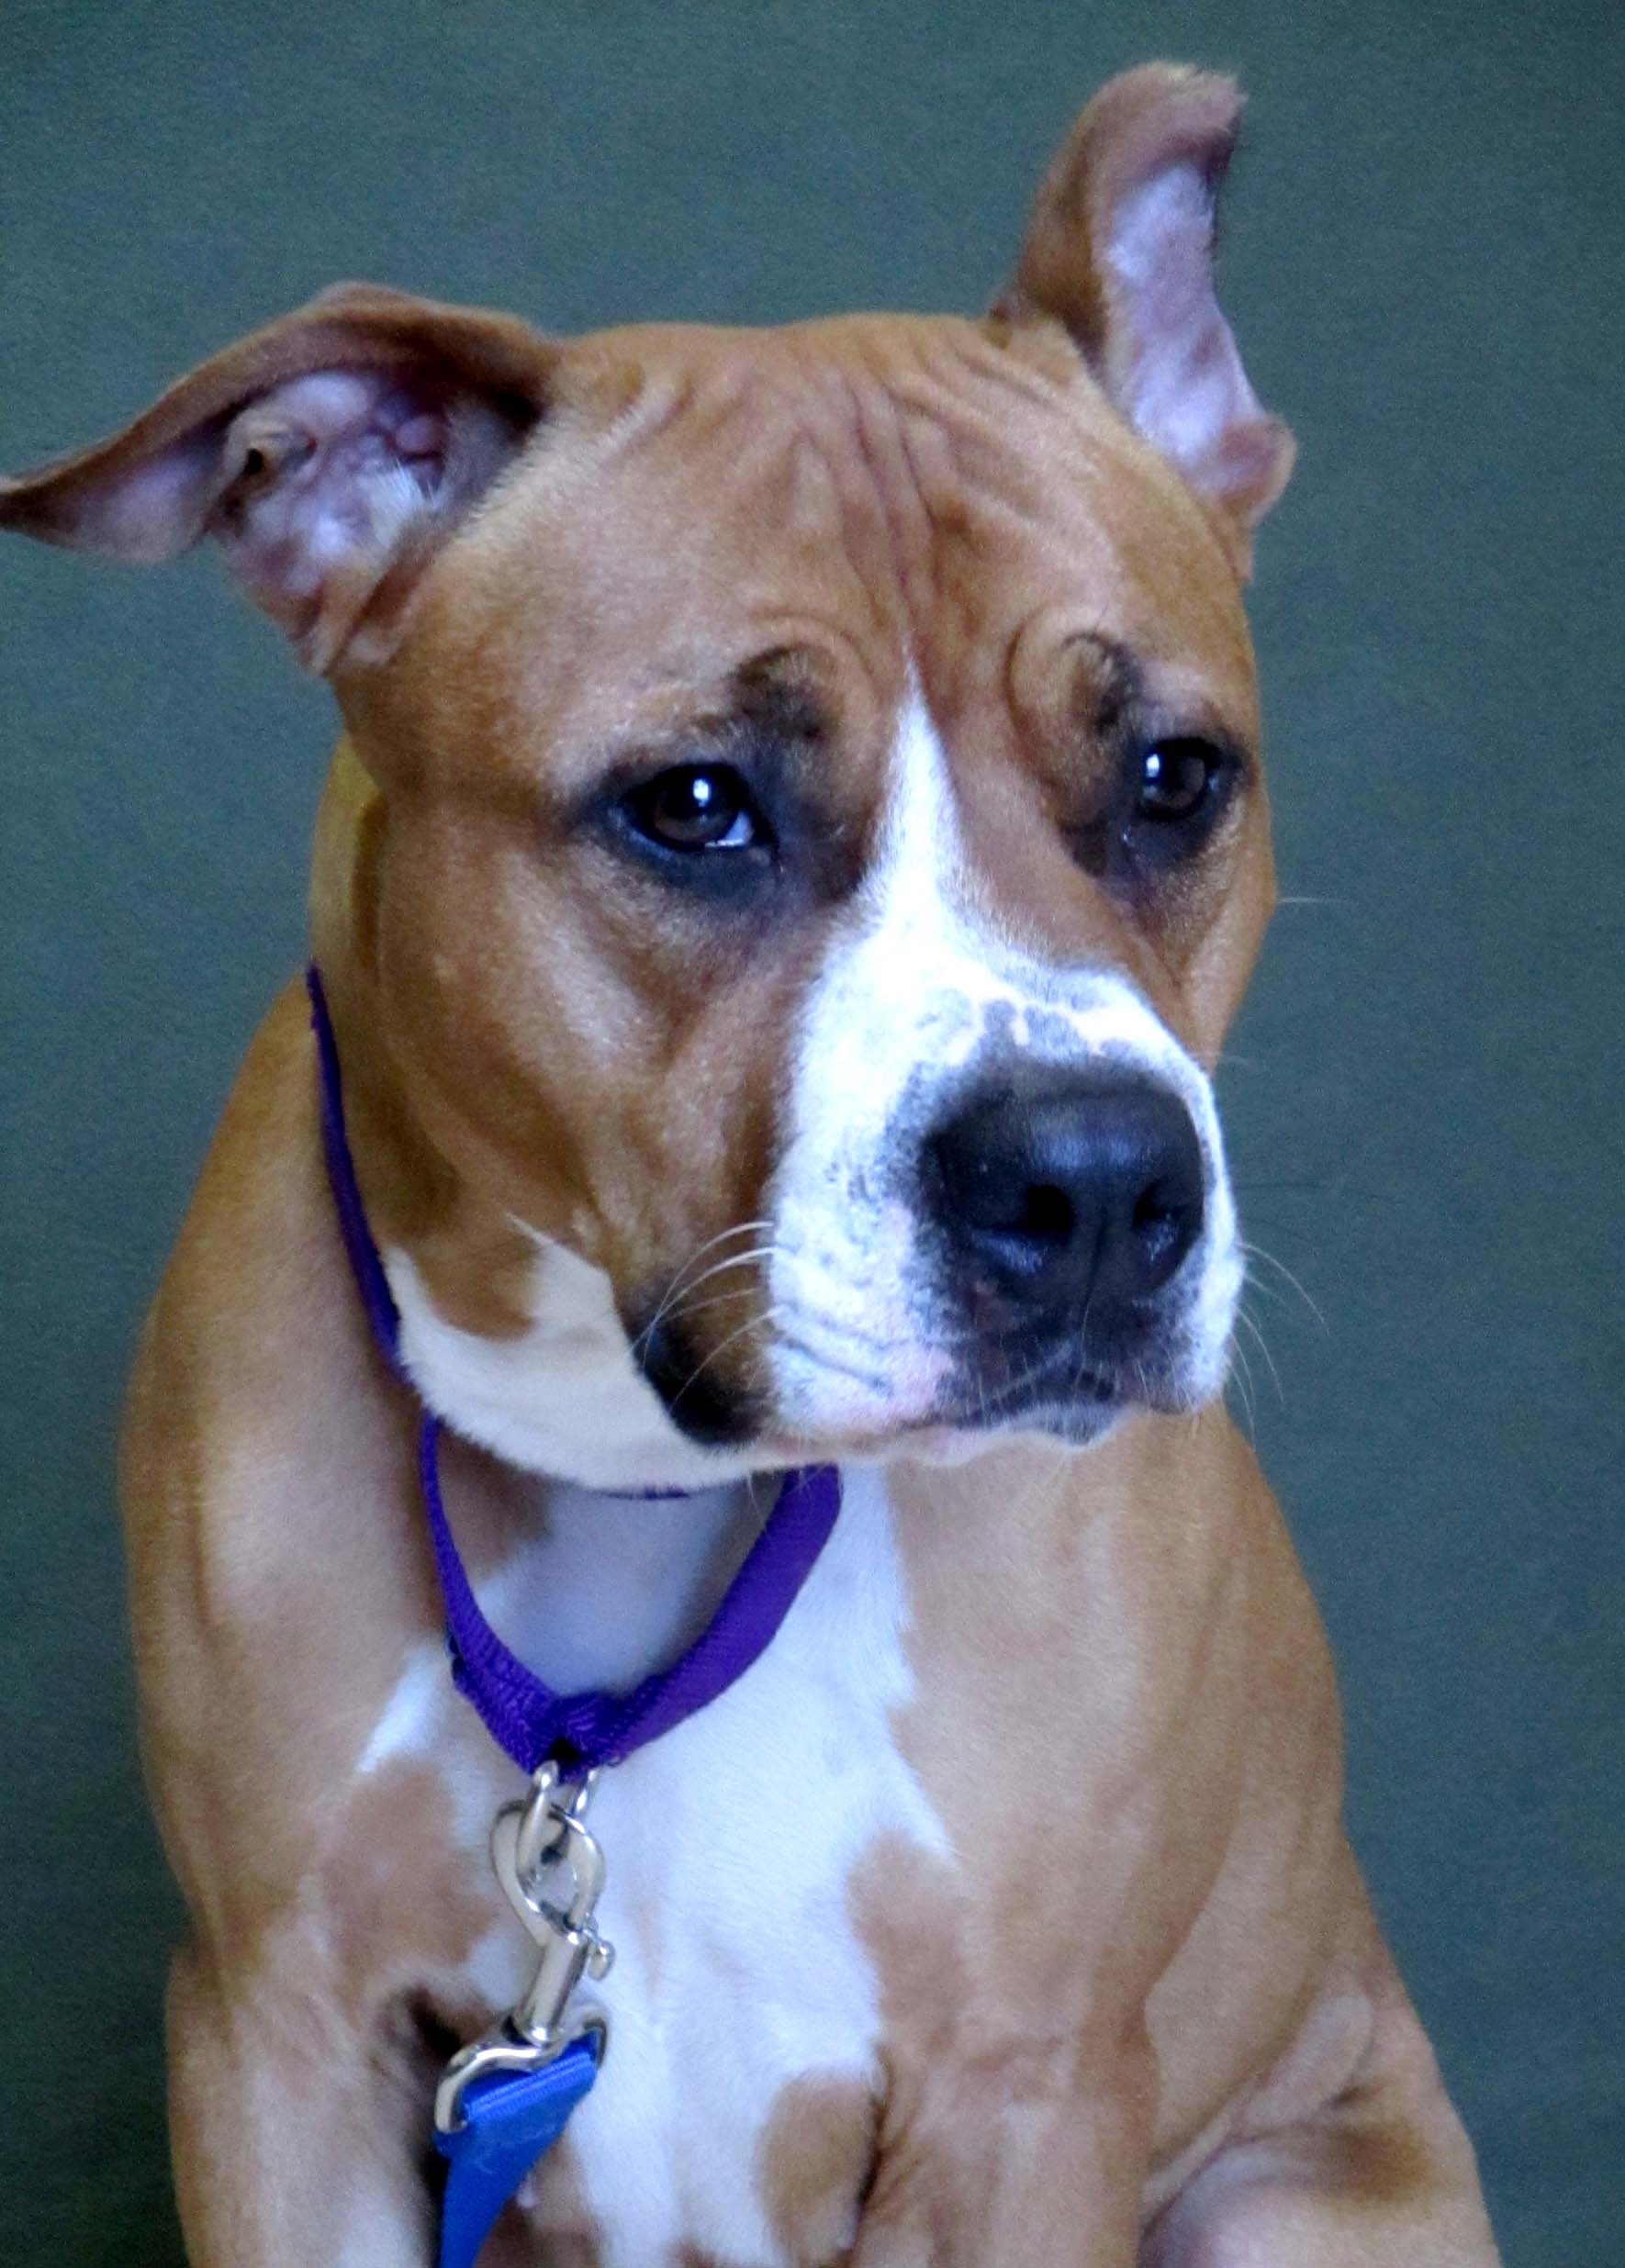 Suki is a 2 year old American Pit Bull Terrier. She would do best in a home with children that are 16 and older due to her being uncomfortable with handling initially. Suki would do best being the only pet. She loves to play with squeaky toys!